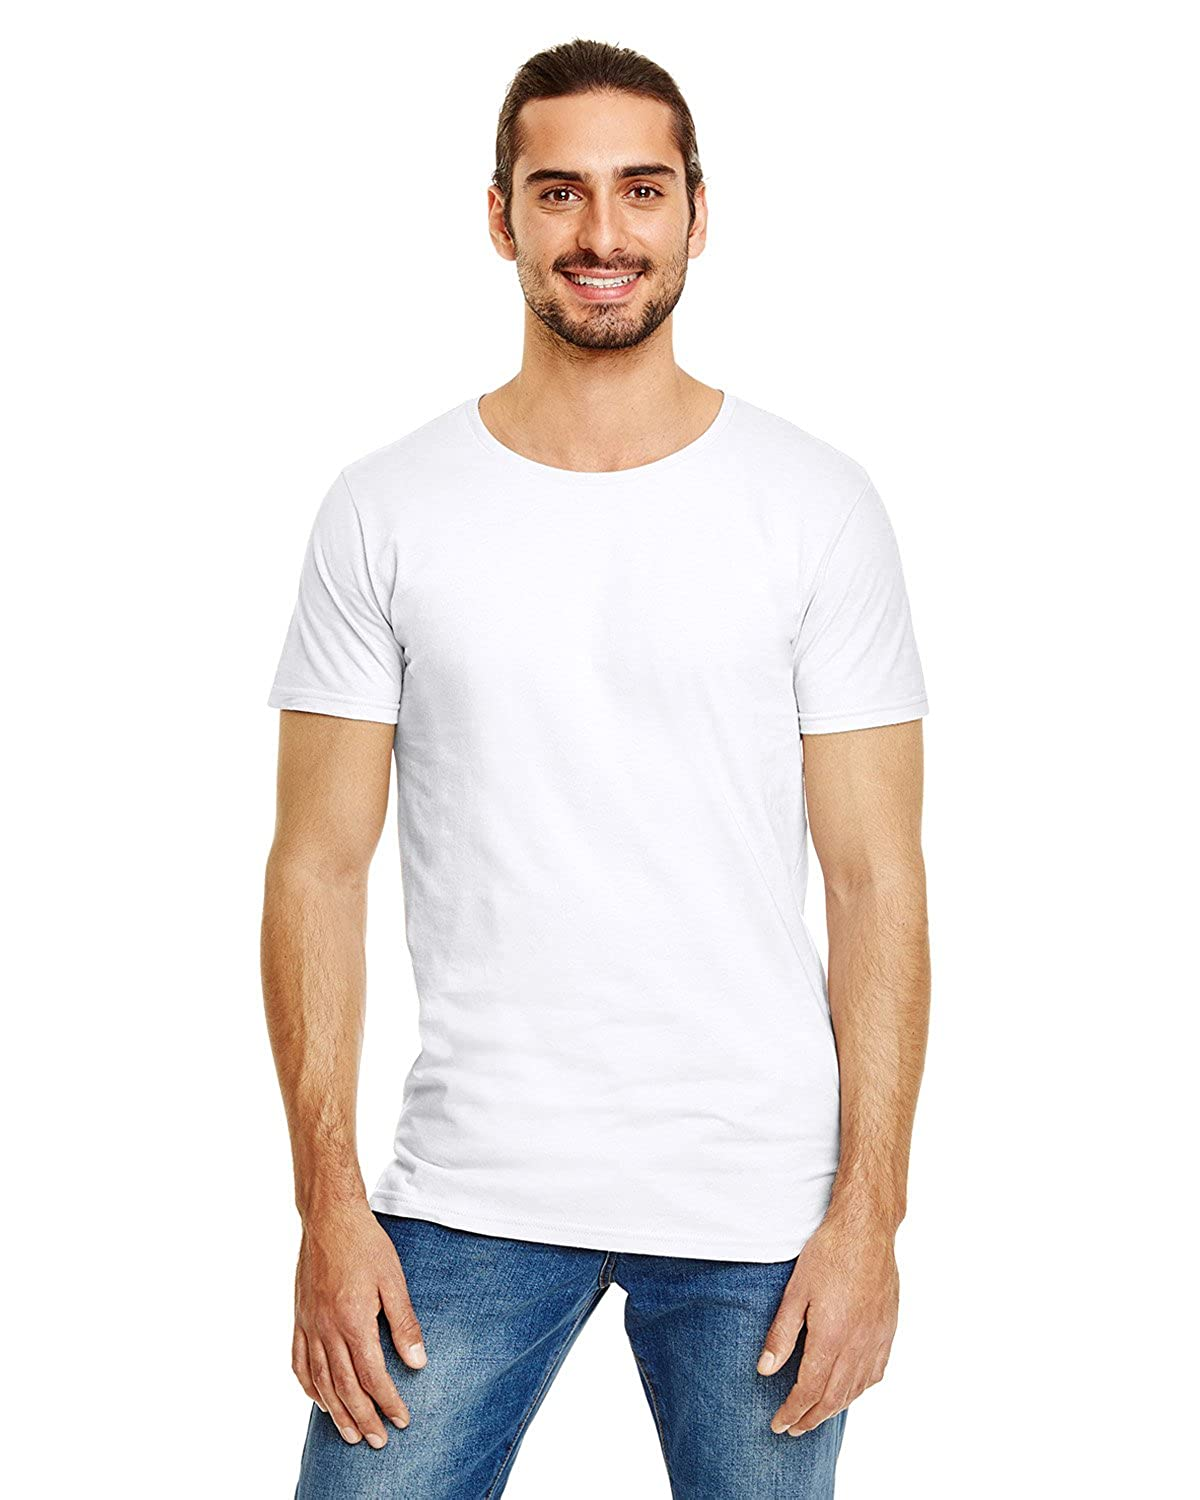 Clementine Adult Lightweight Long /& Lean Tee 5624 White 2XL